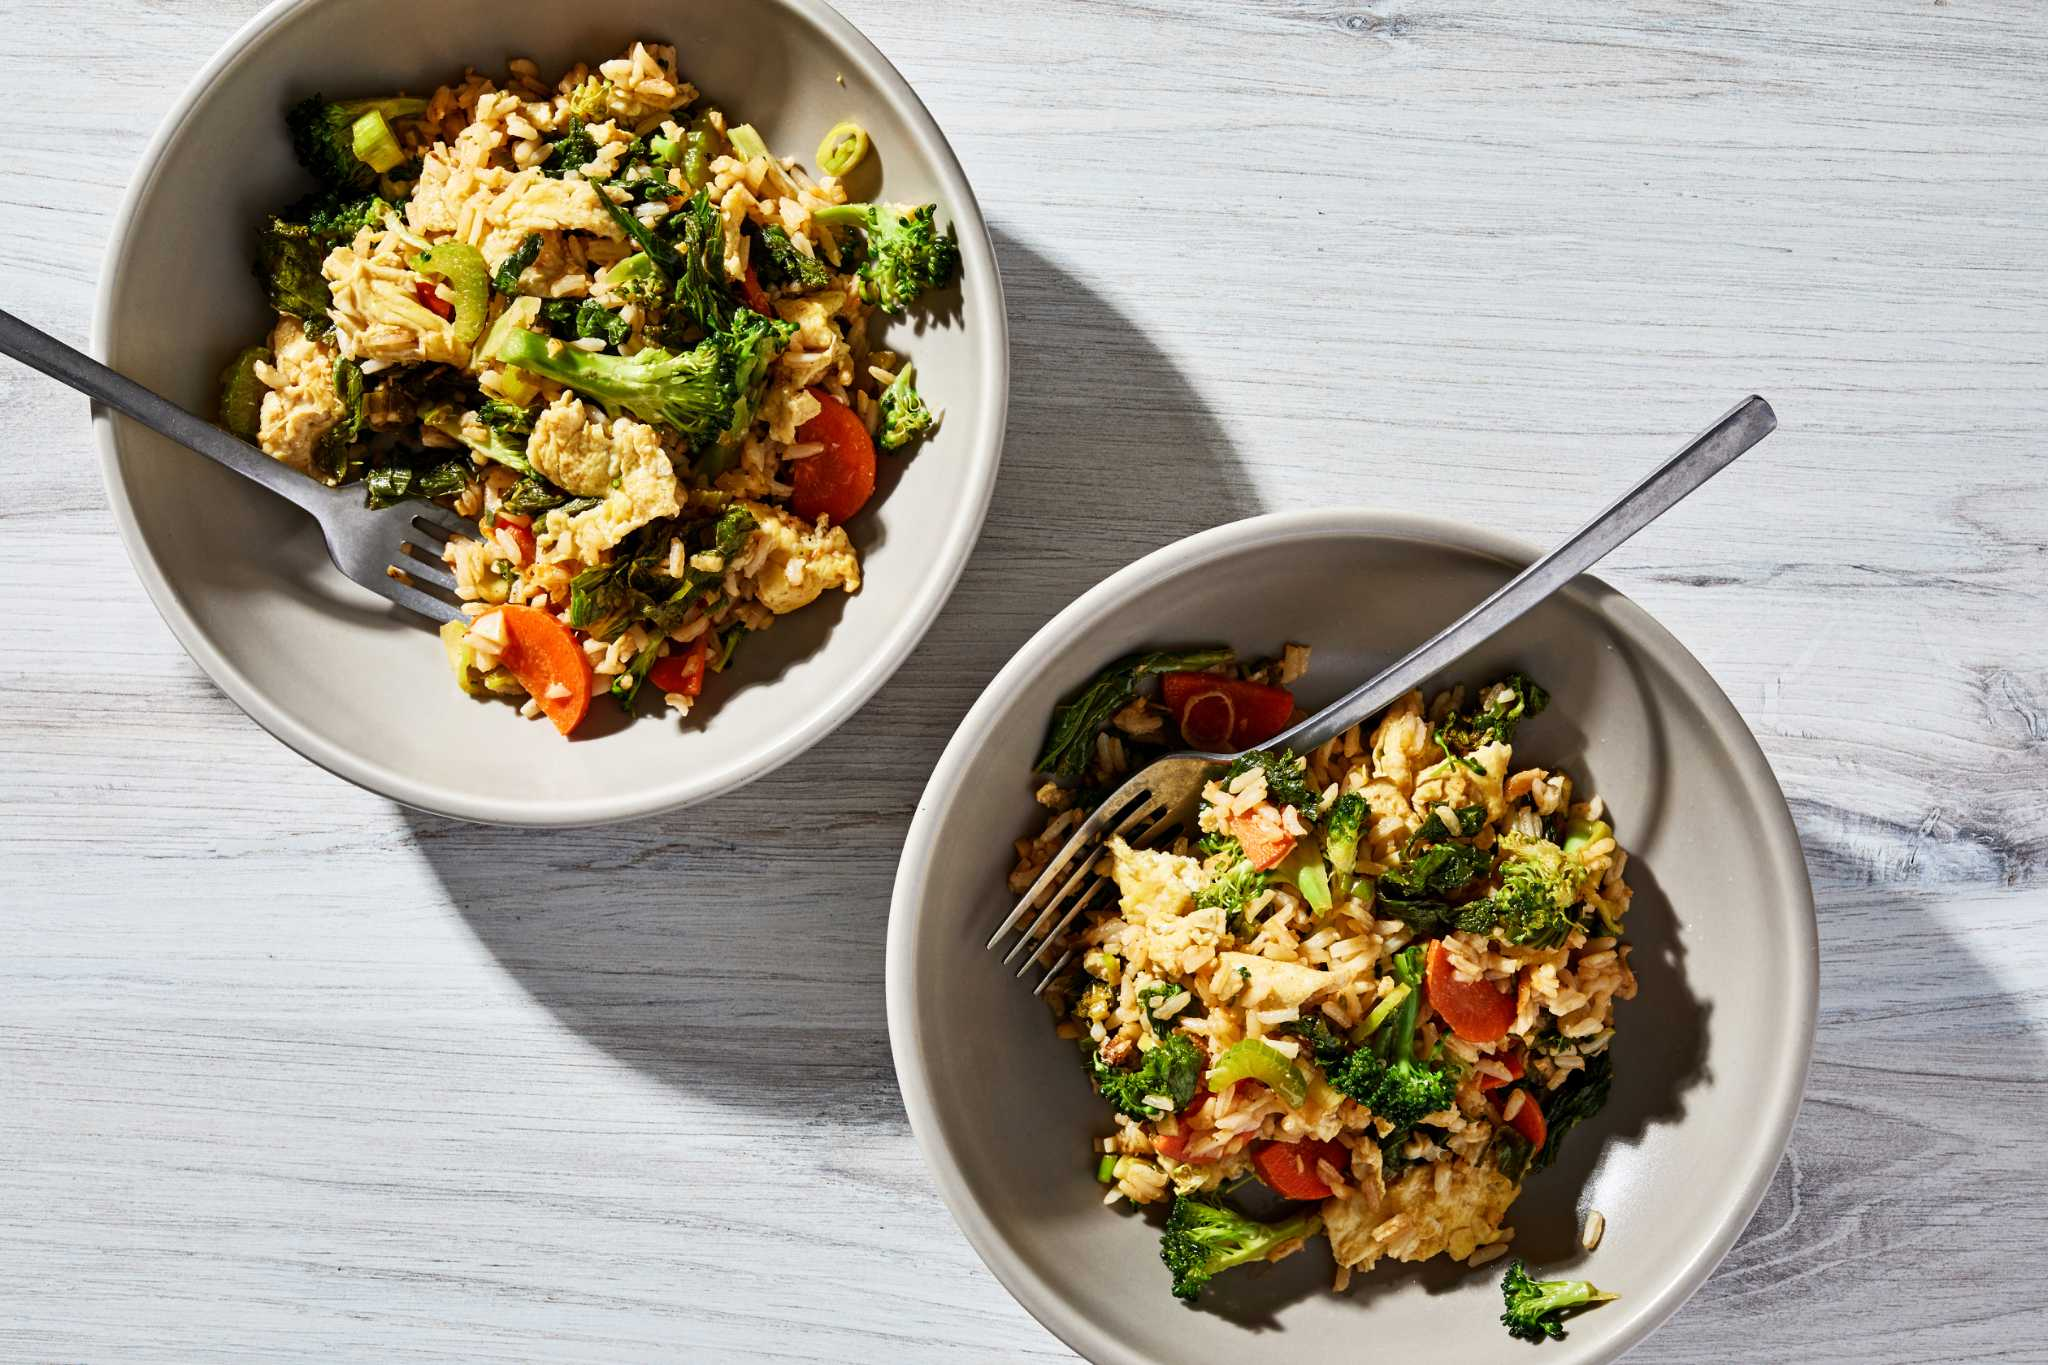 Fried rice was made for those containers of leftover takeout in your fridge